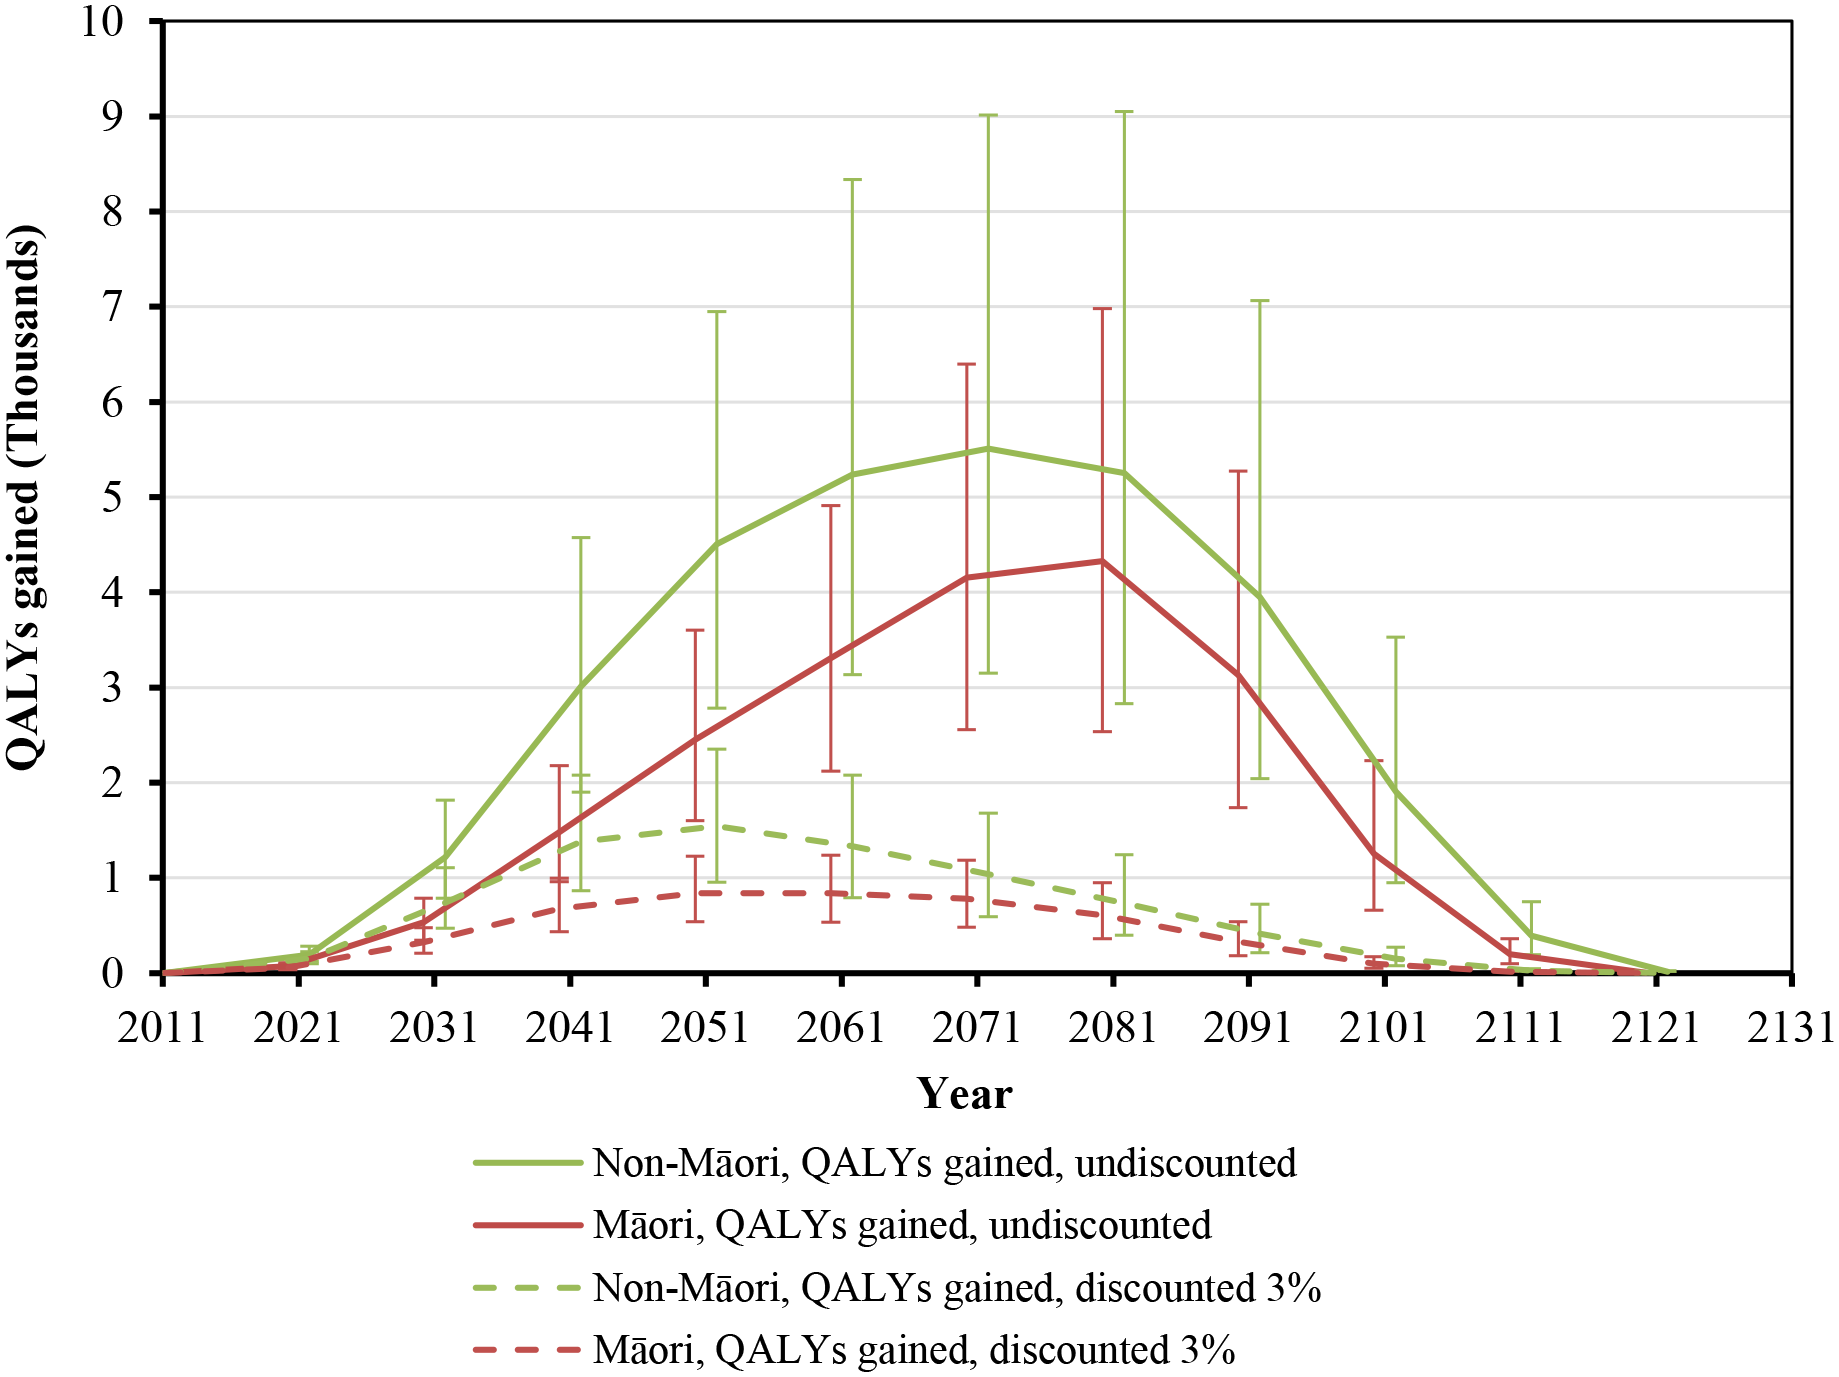 Projected QALYs gained by future year for 10% per annum tax increases from 2011 to 2031, by sex and ethnicity (in the 2011 cohort of the New Zealand population without replacement).